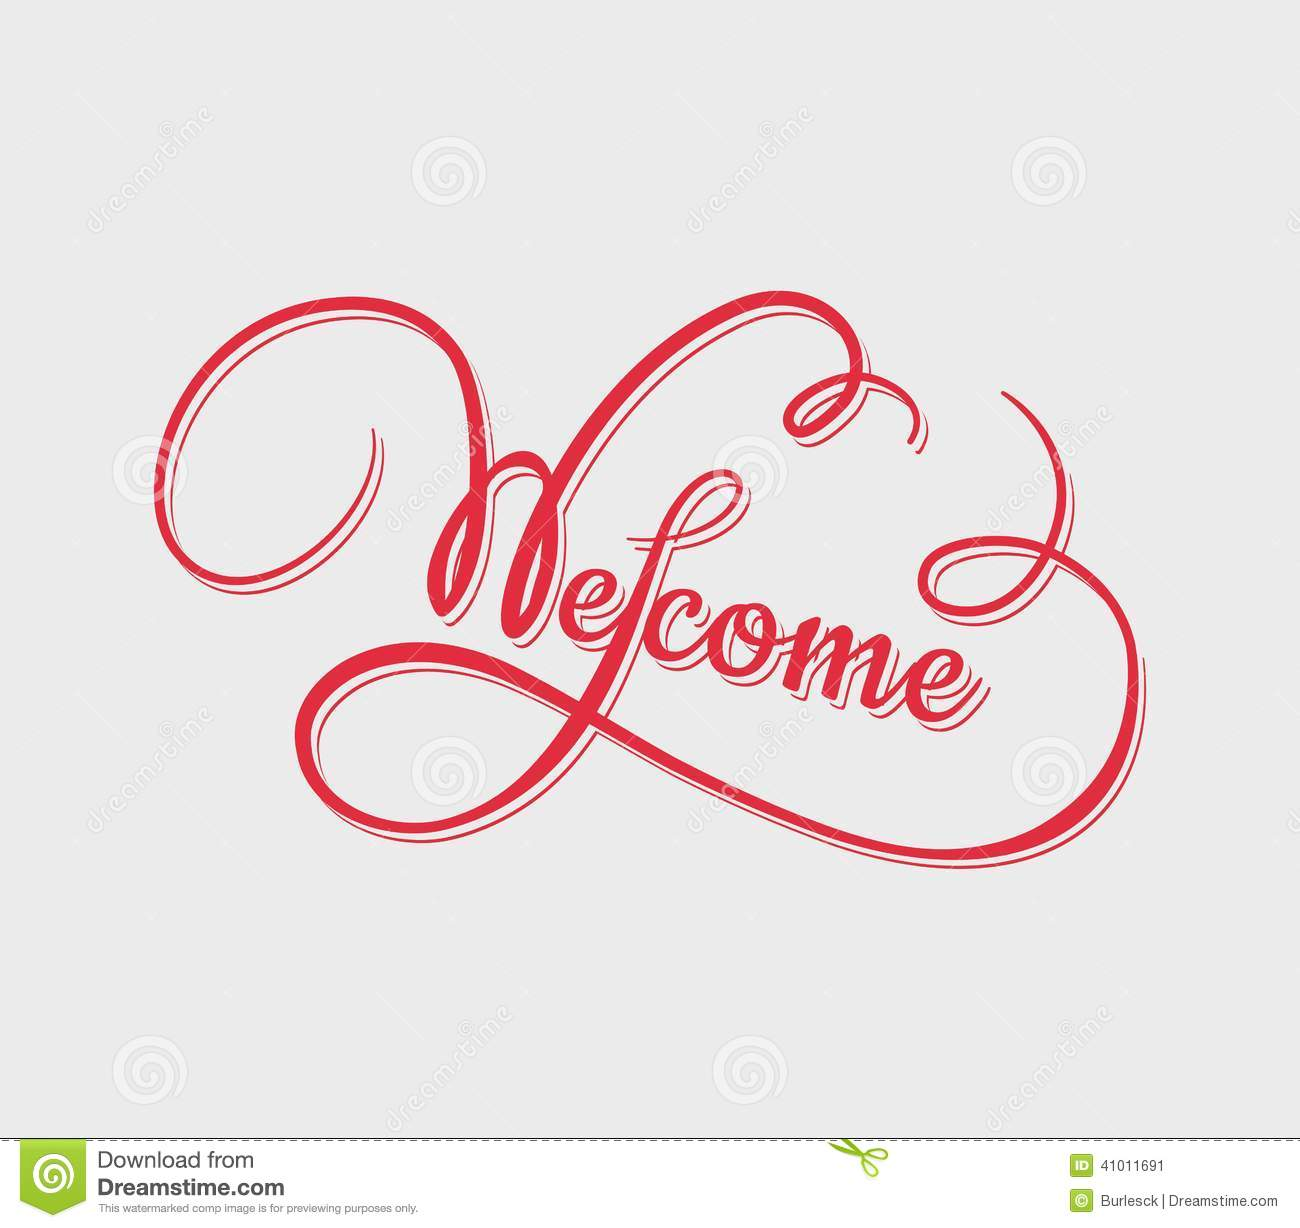 Welcome calligraphy